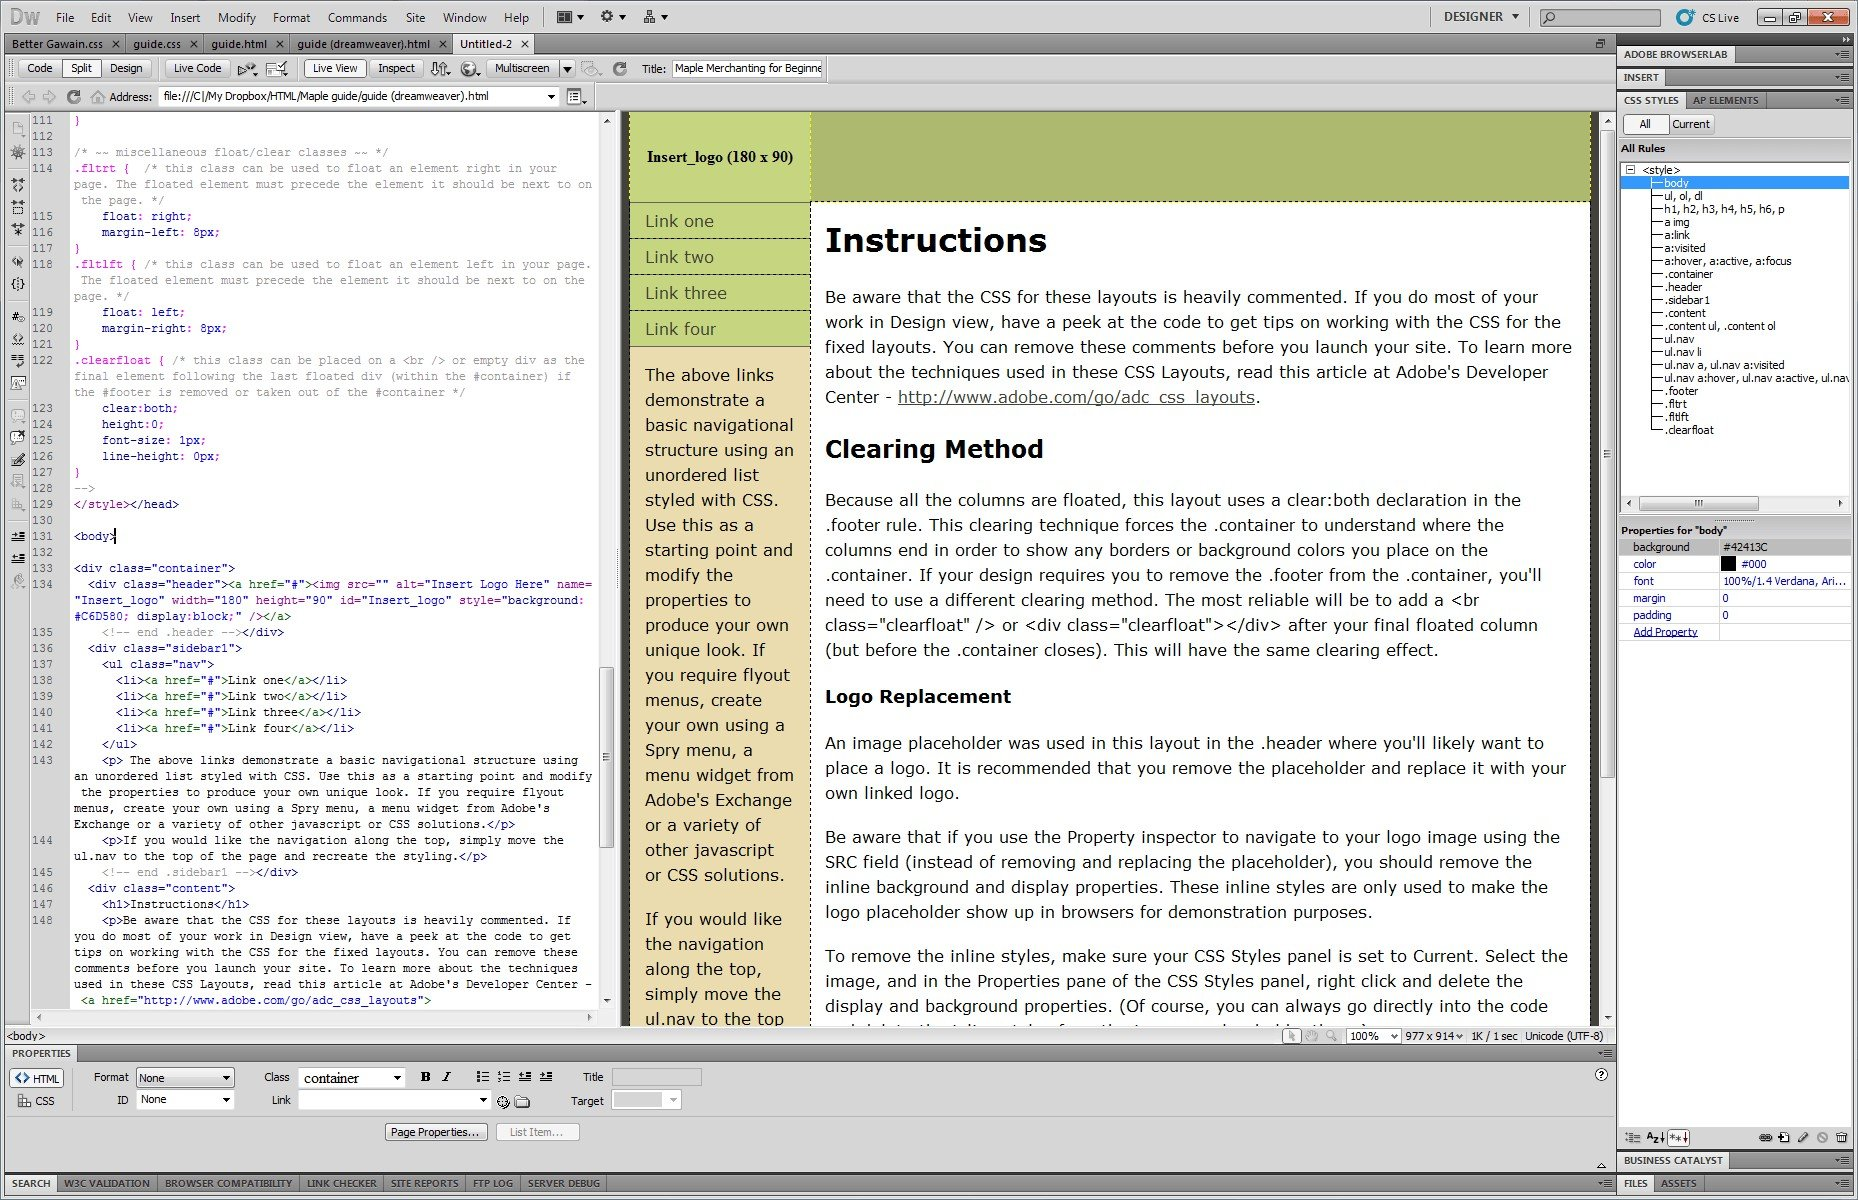 Adobe Dreamweaver Alternatives and Similar Software - AlternativeTo net